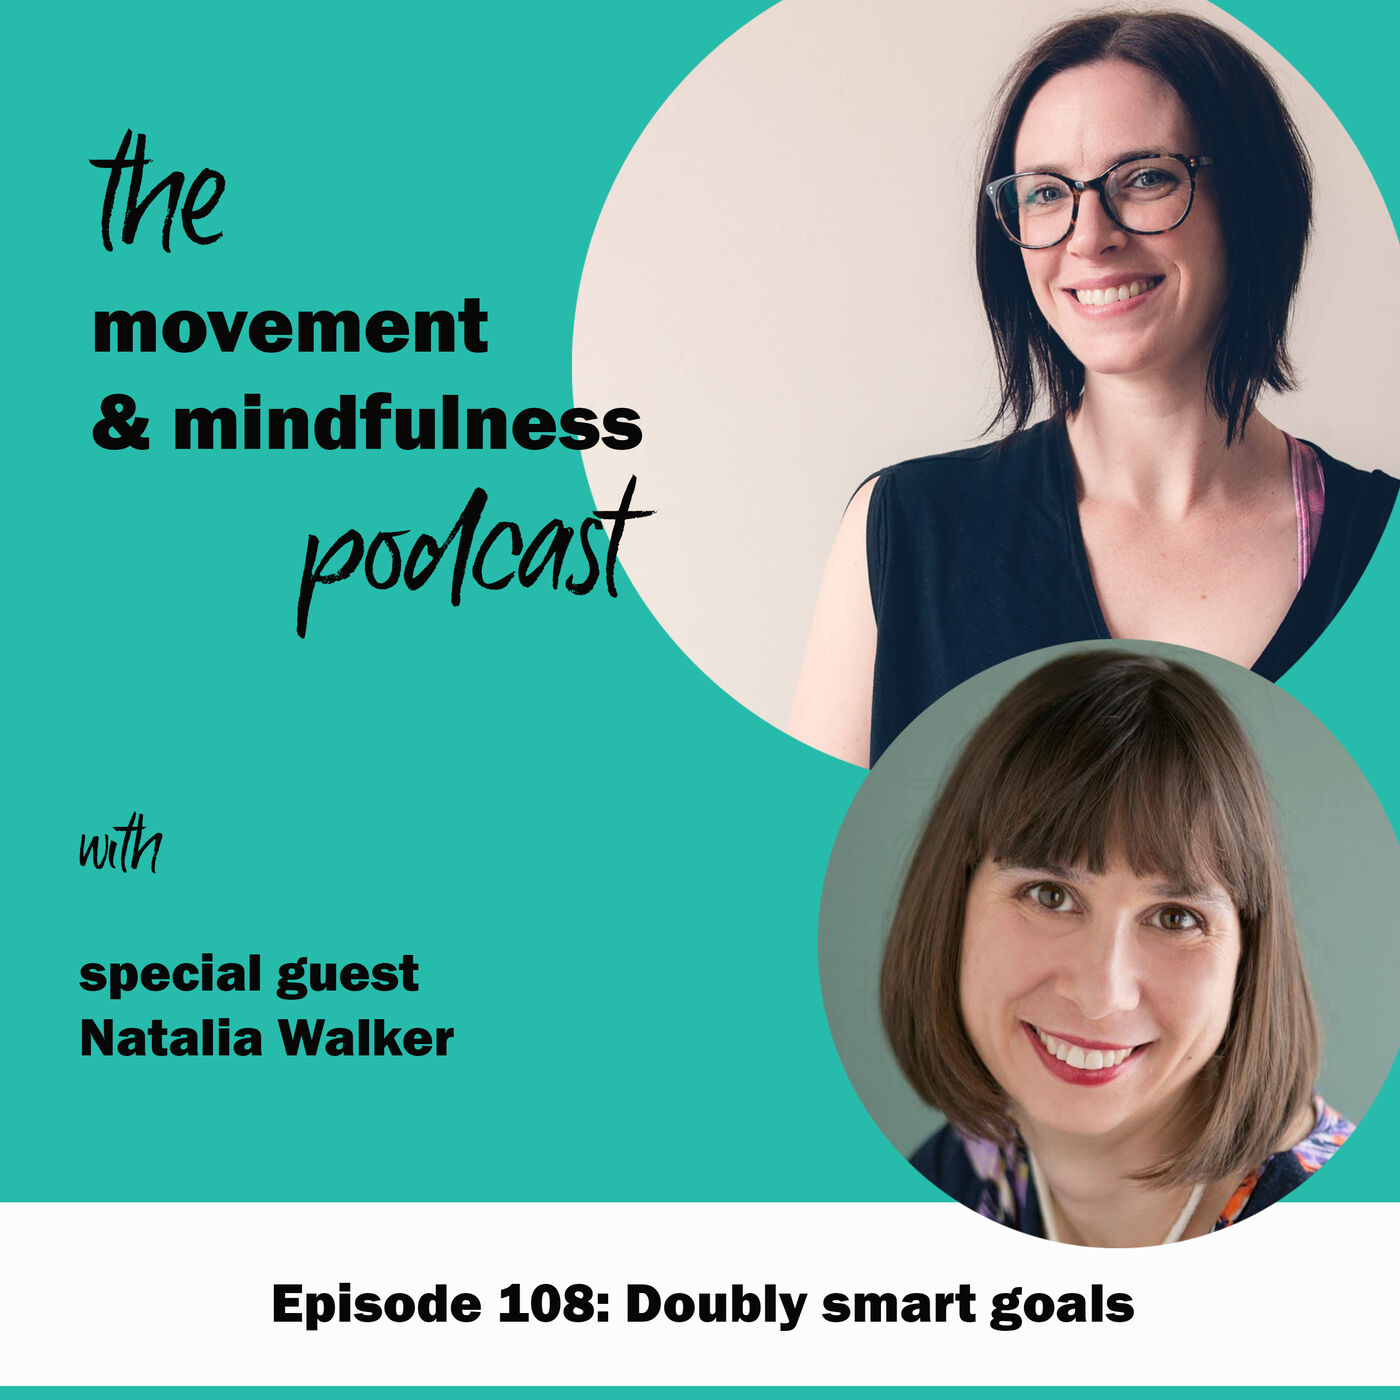 Ep 108: Doubly smart goals with Natalia Walker